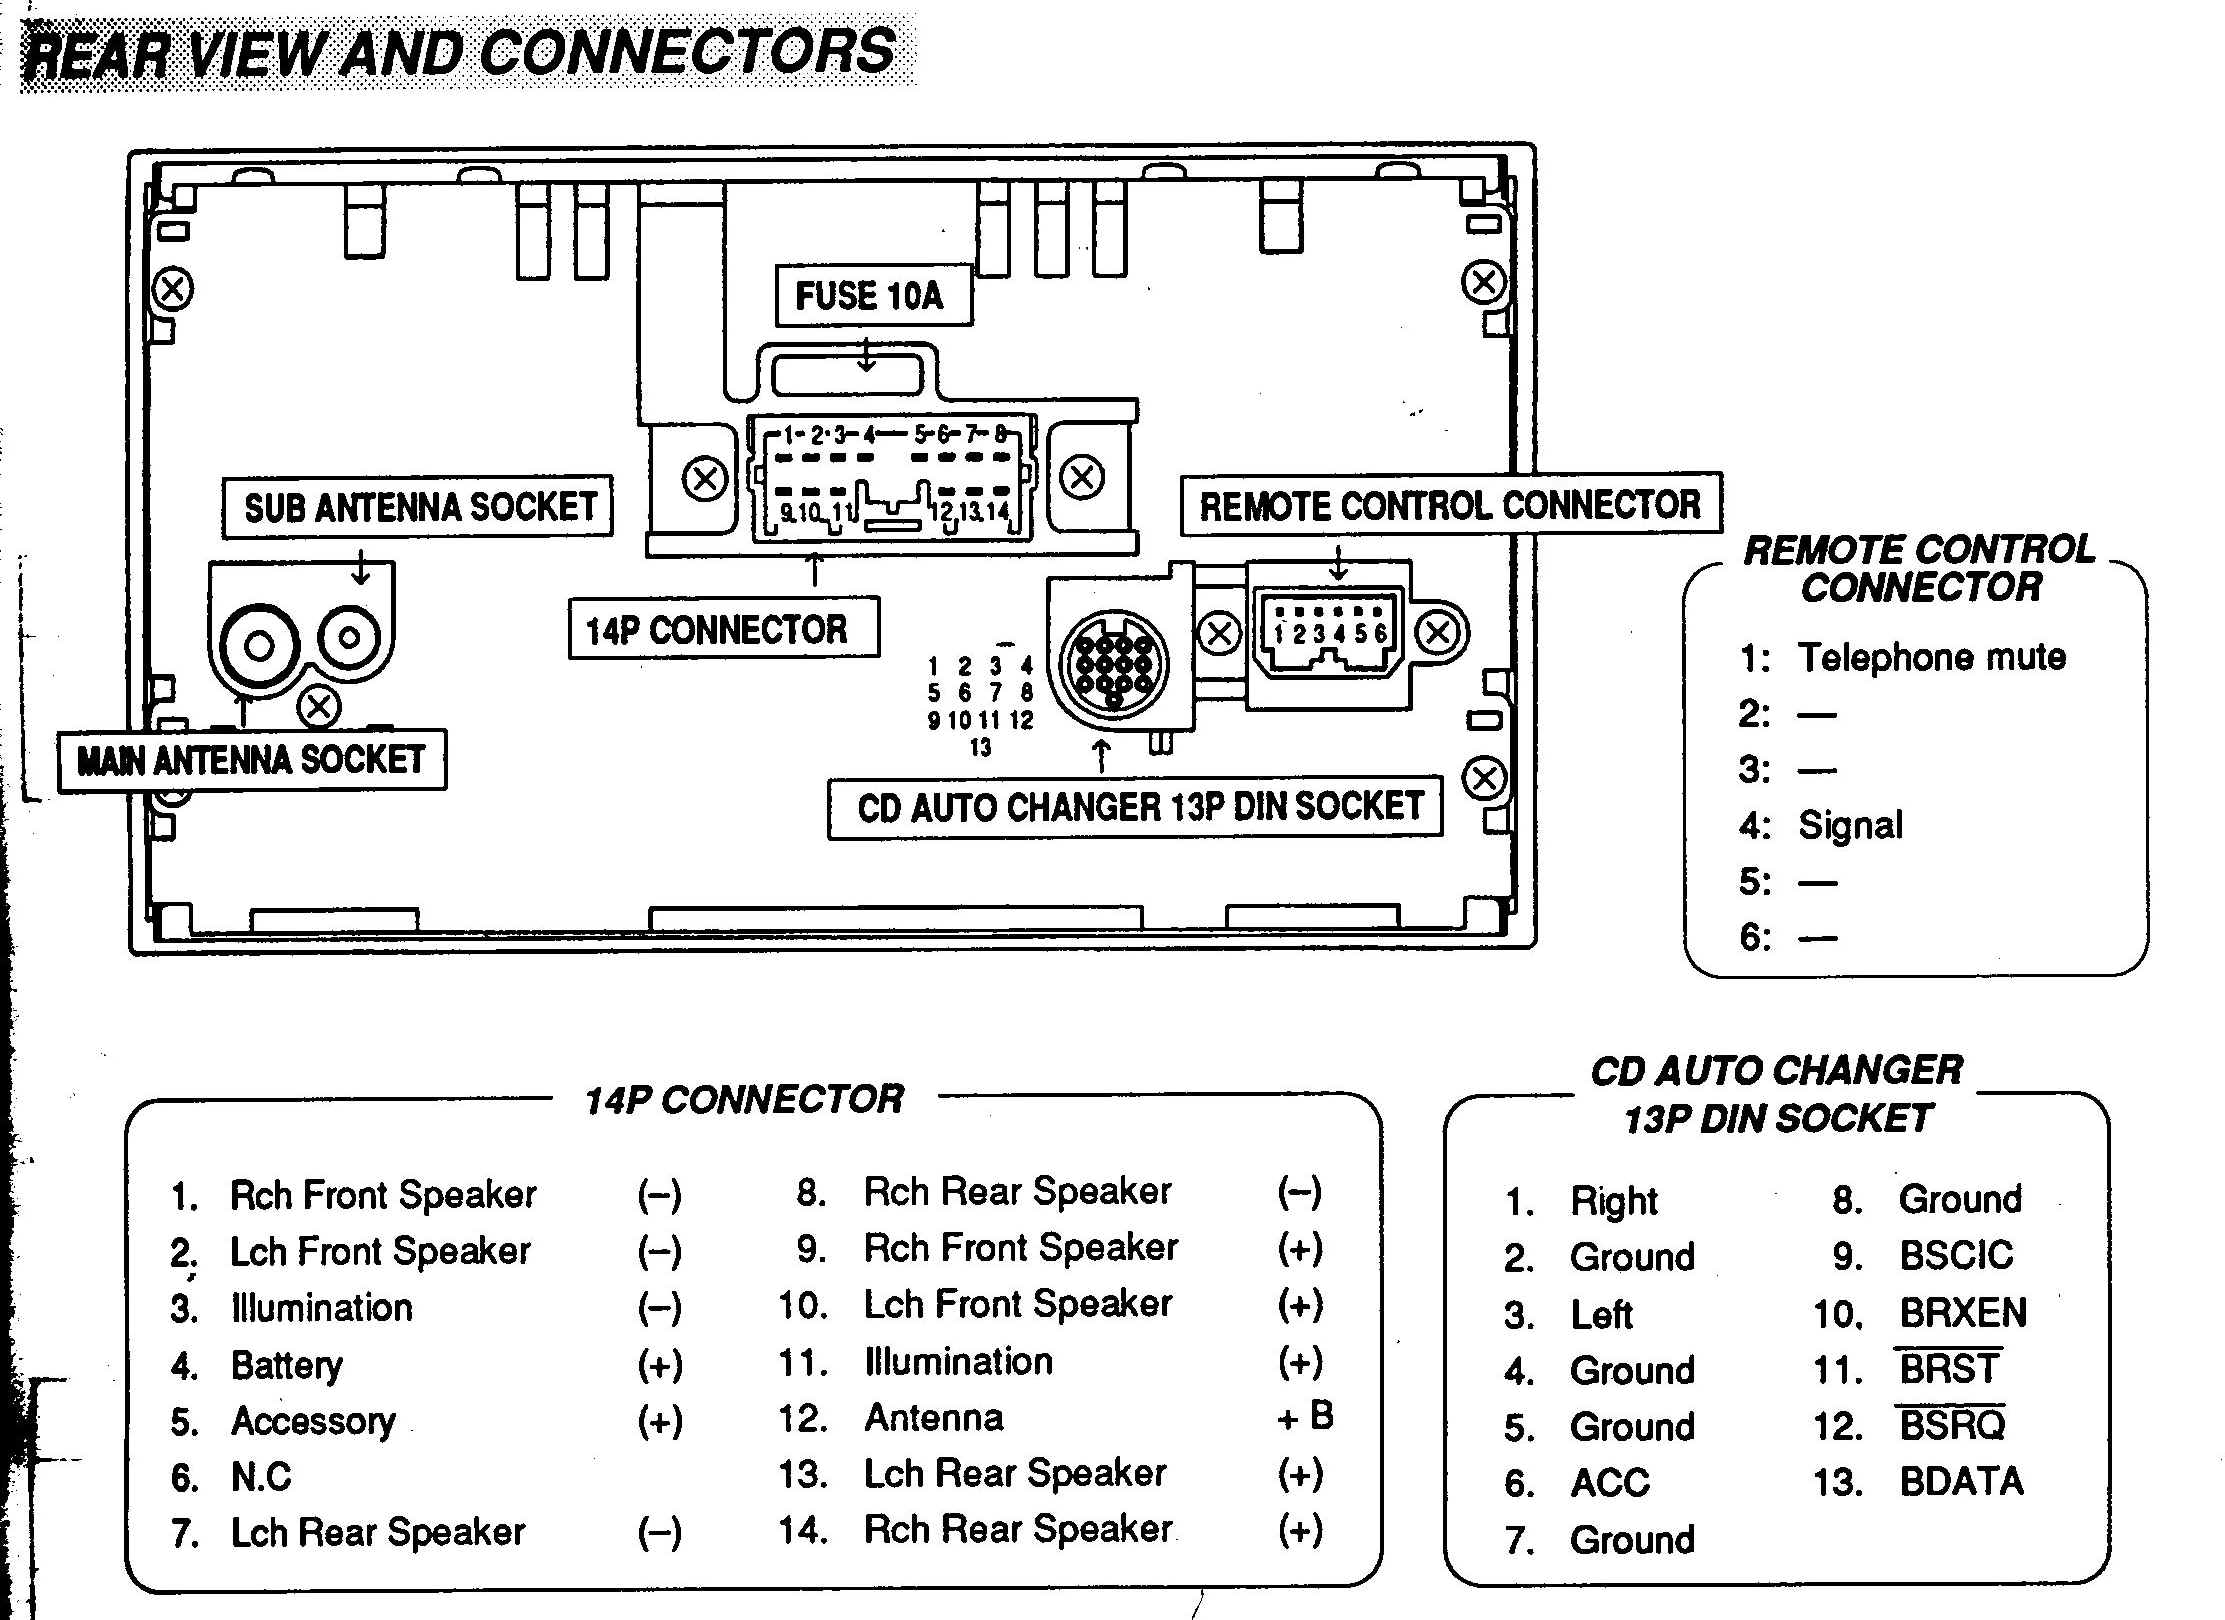 WireHarnessMit121003 mitsubishi radio wiring diagram mitsubishi eclipse wiring diagram 2000 mitsubishi eclipse radio wiring diagram at readyjetset.co